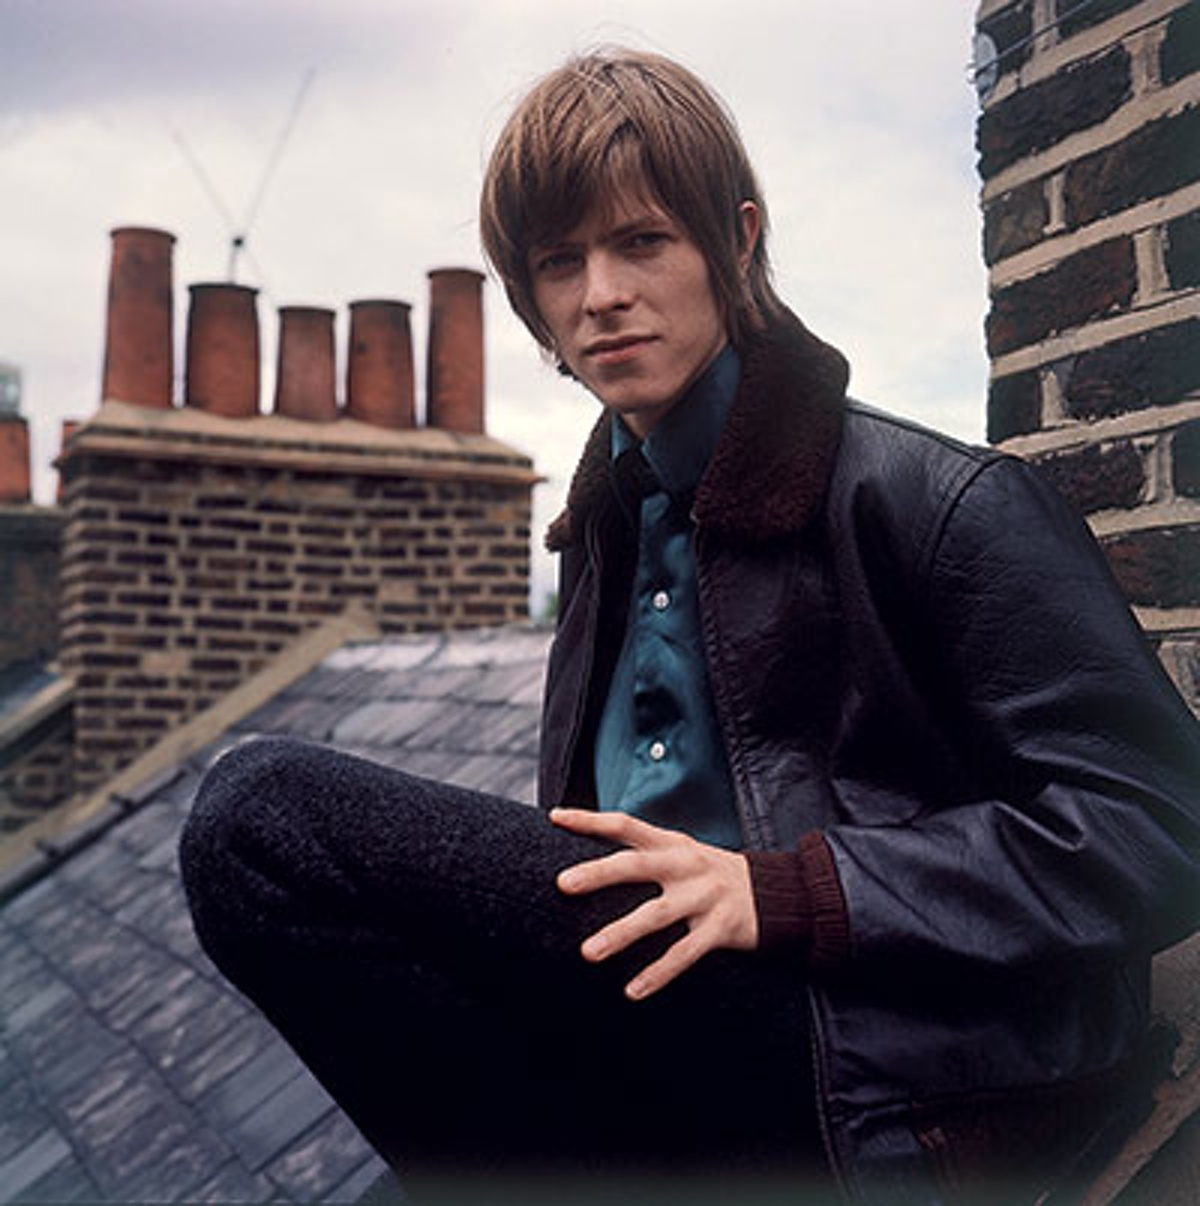 David-Bowie-is-photograph-006